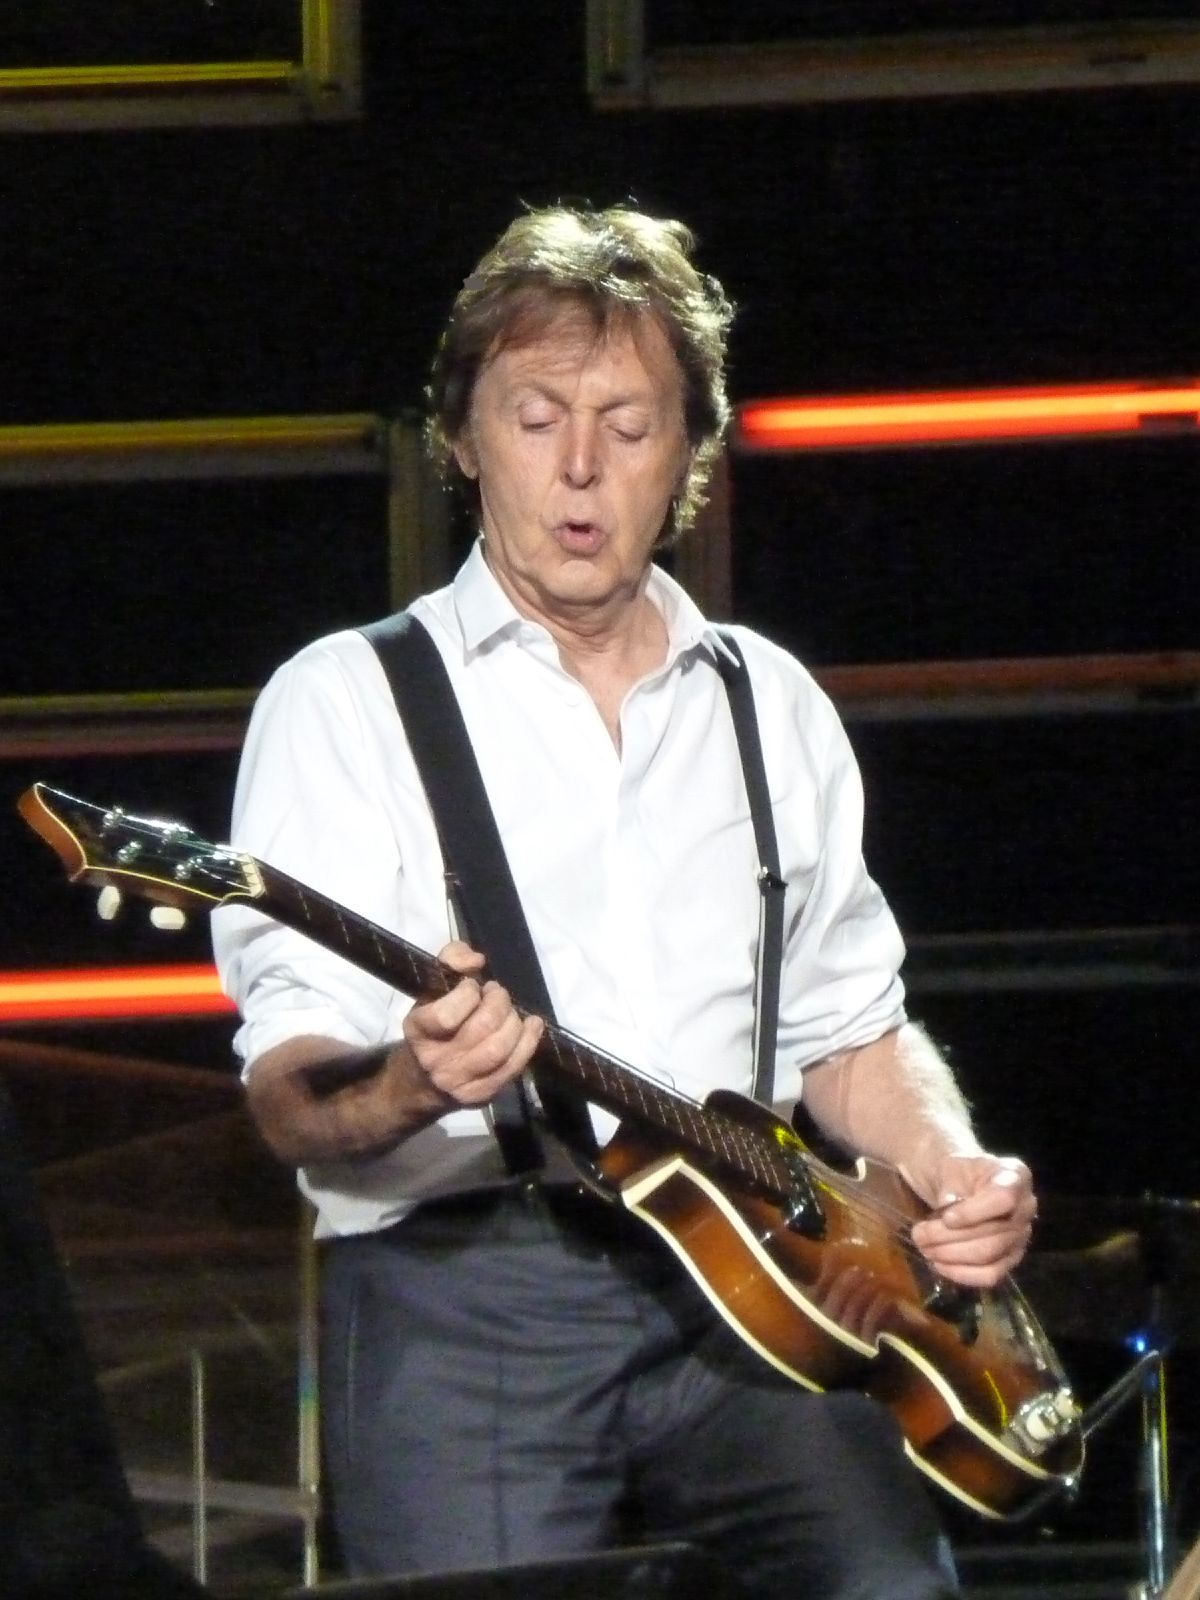 Paul McCartney (Wikipedia)